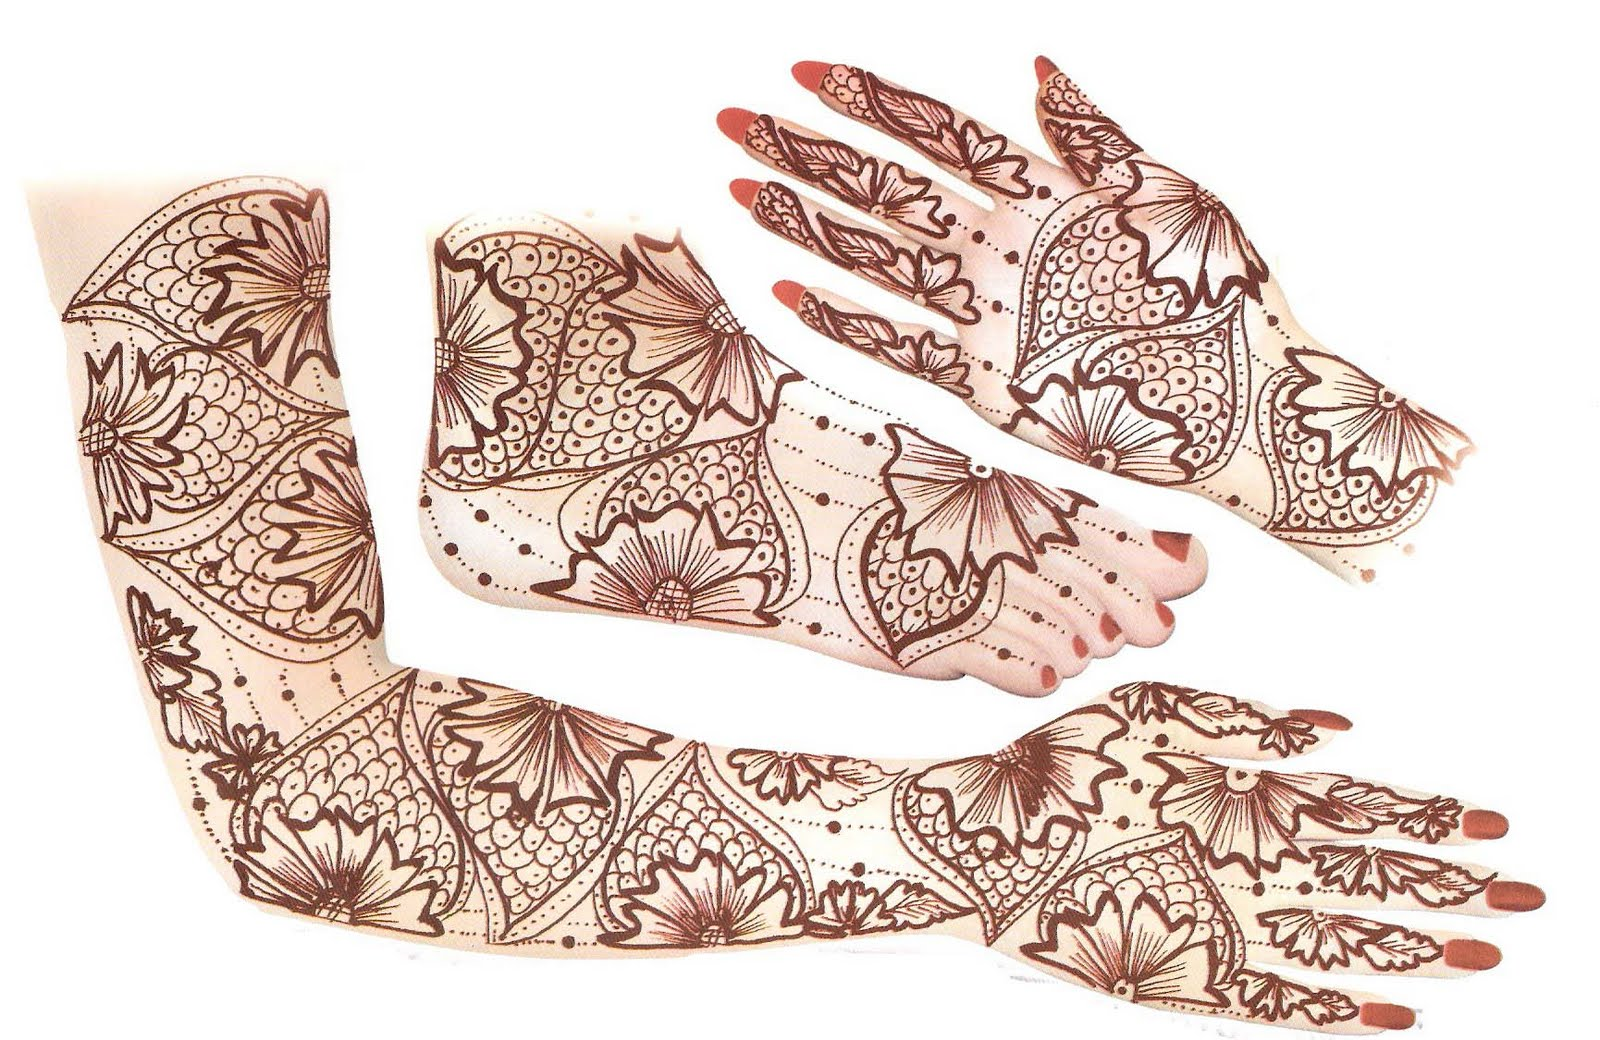 Babies mehndi designs for hands arms creative simple tattoo pattern